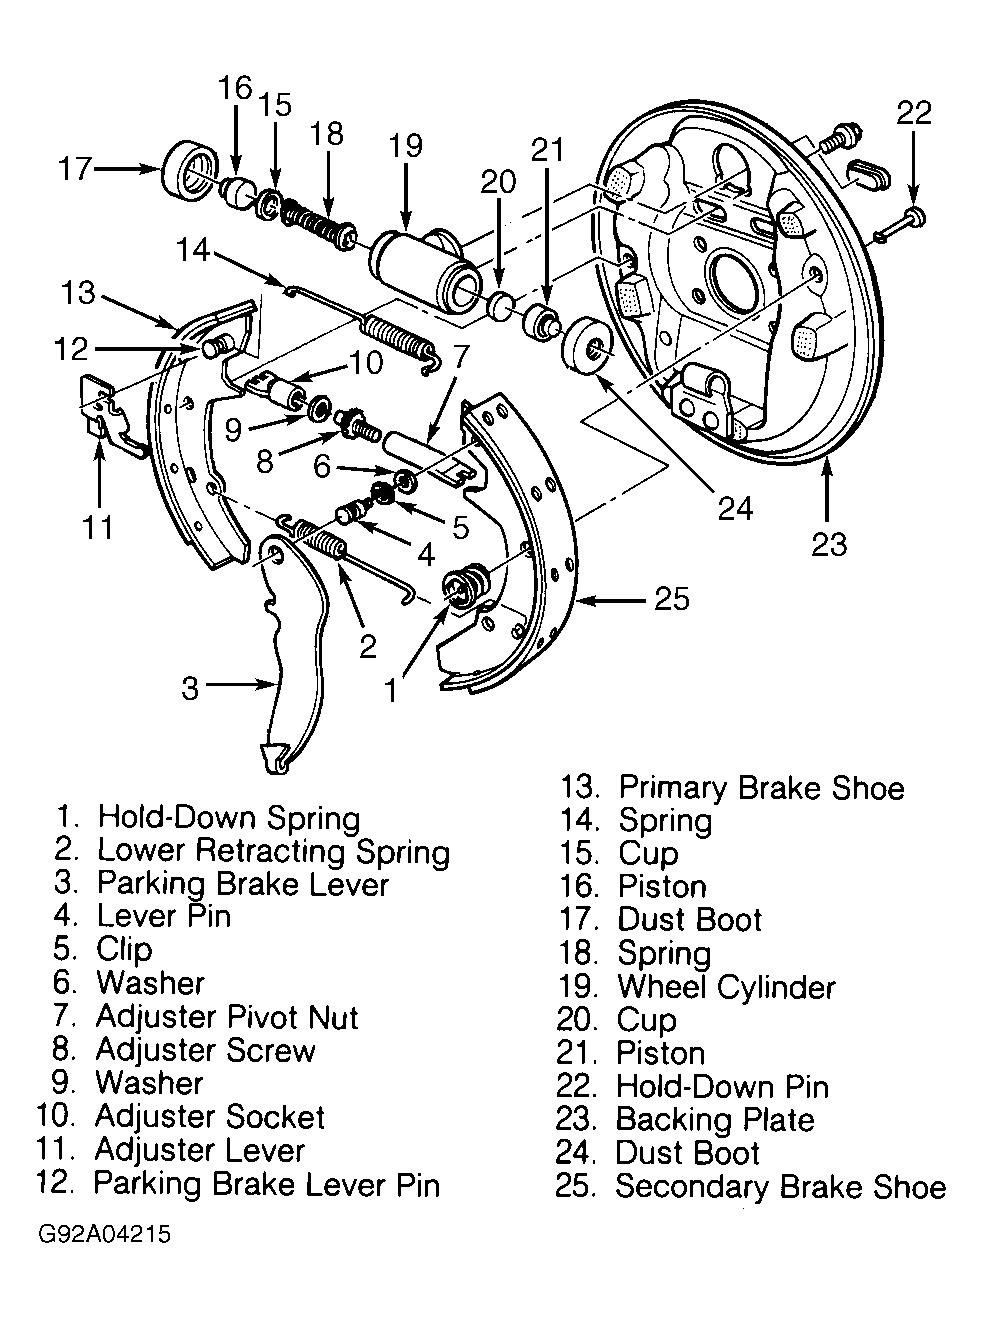 2004 ford taurus rear brakes where can i find a diagram of